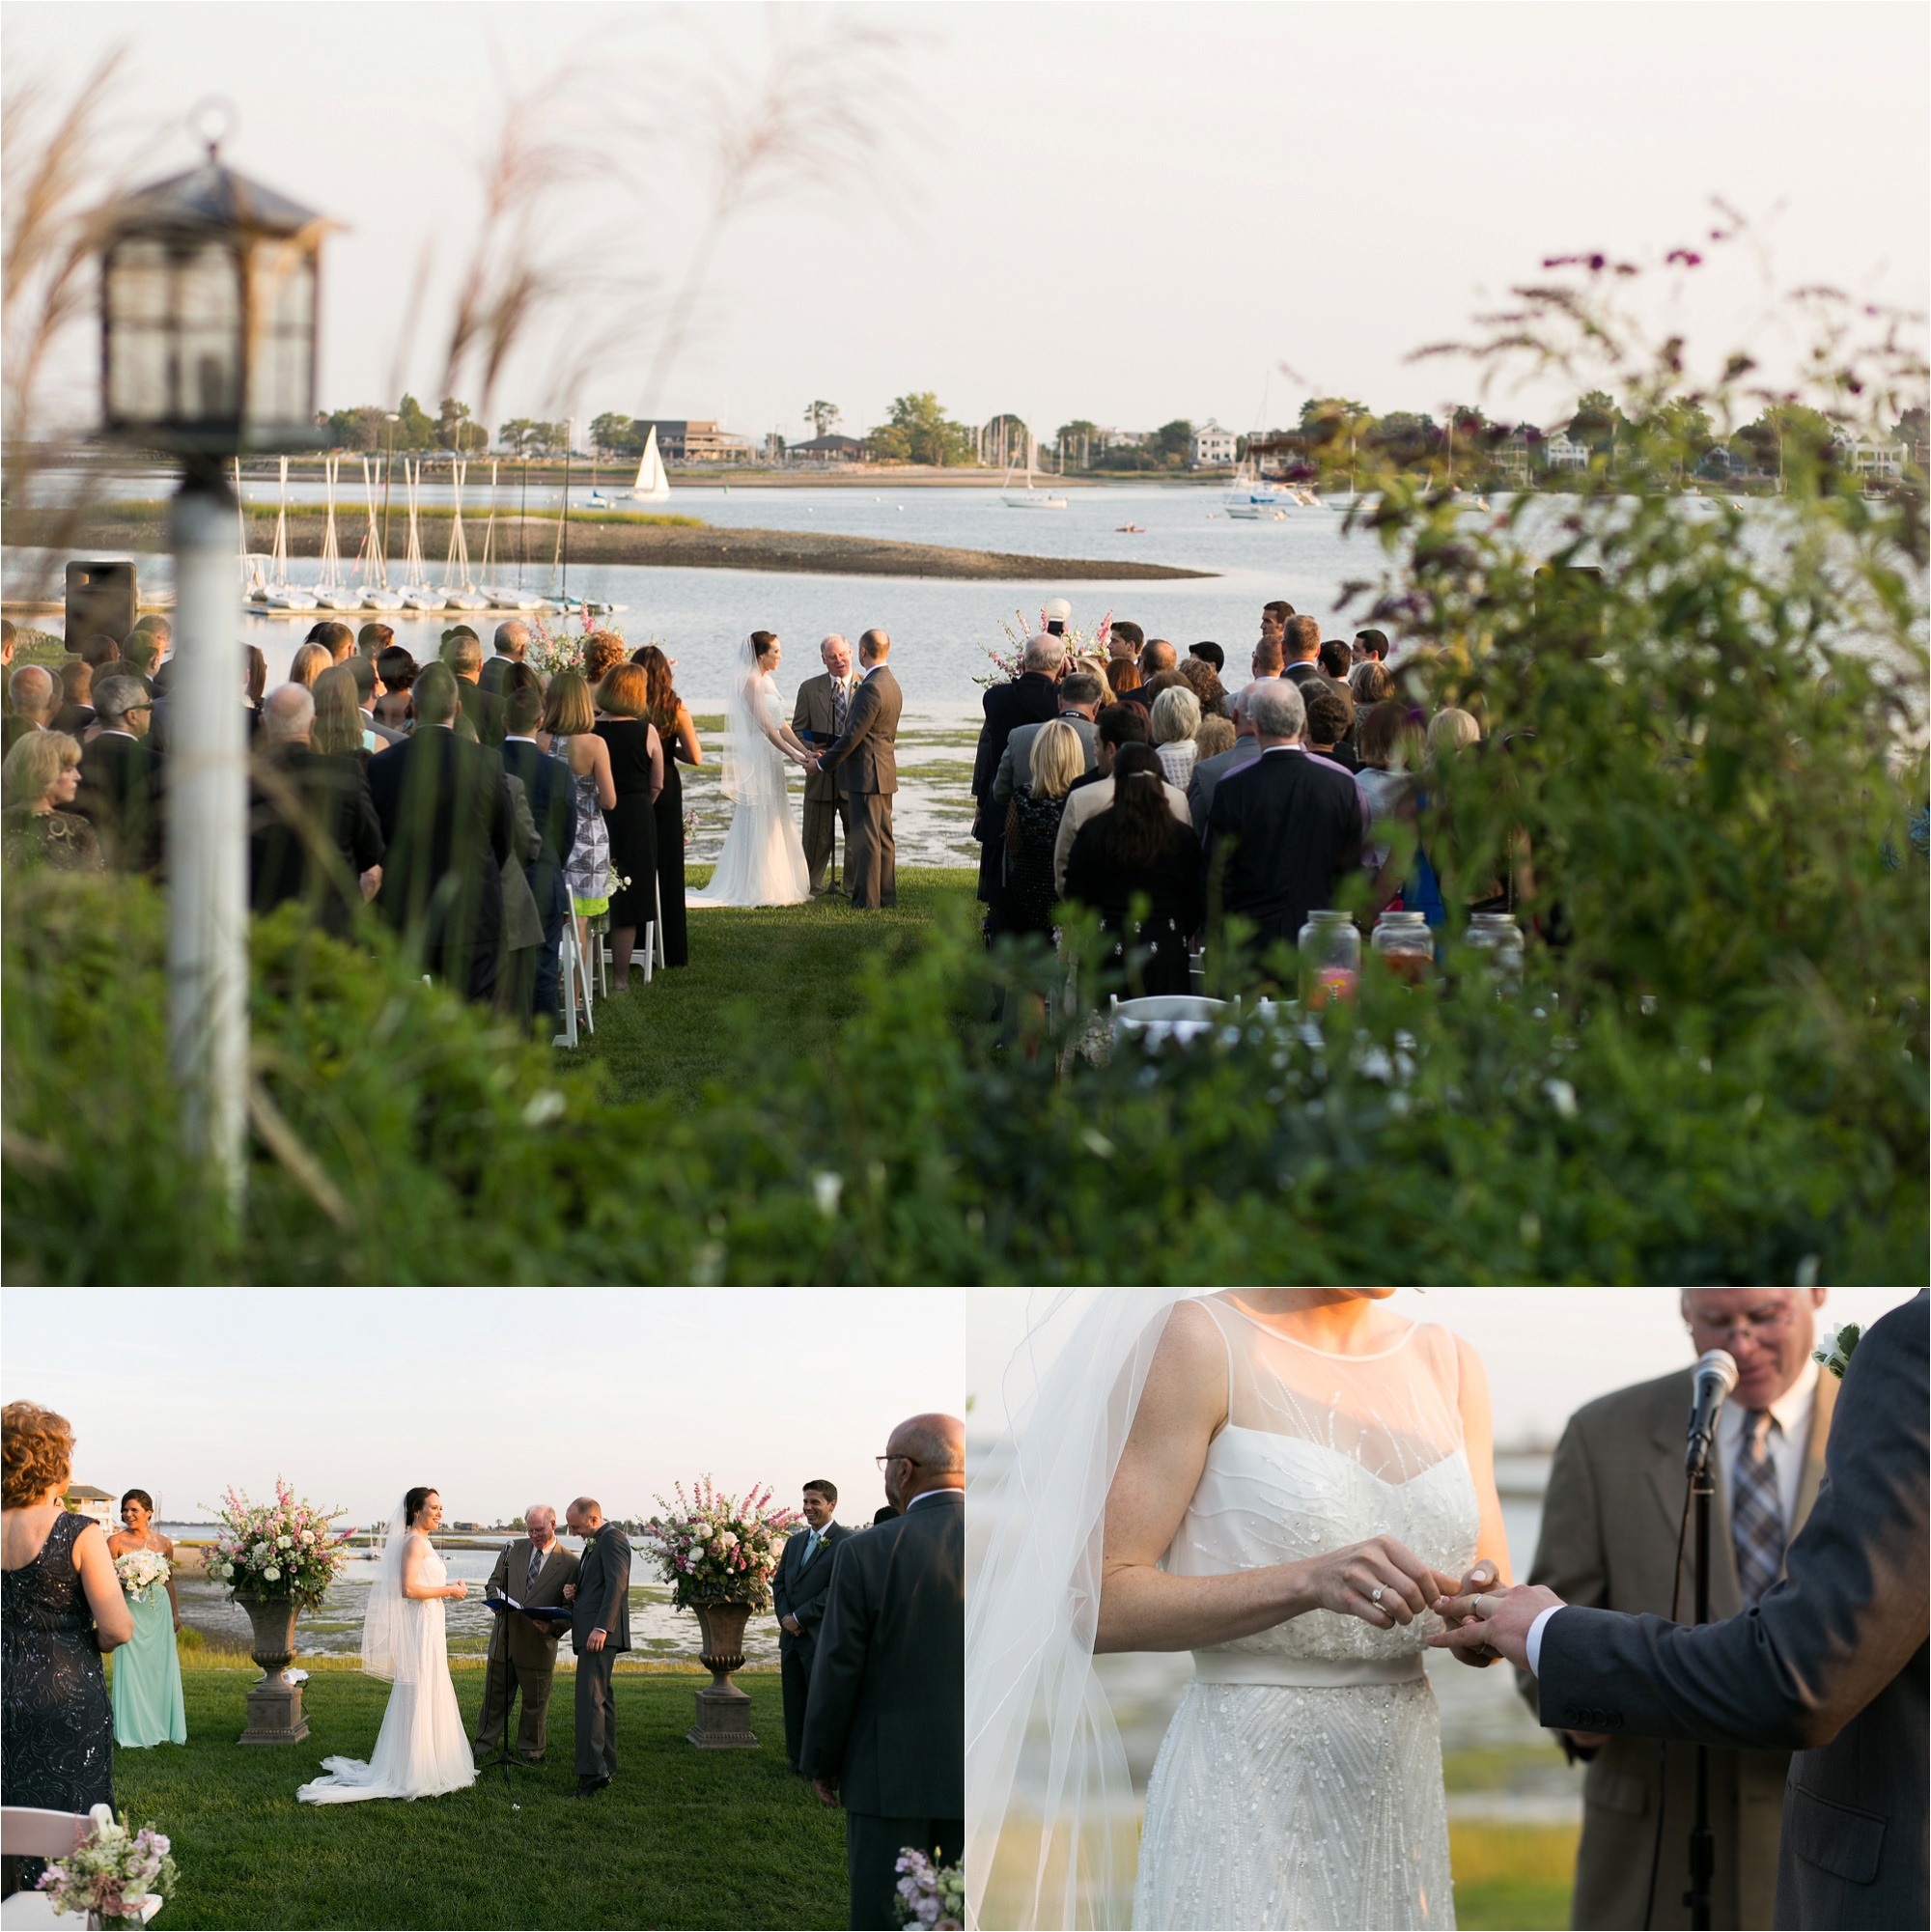 The Inn at Longshore features a dramatic coastal setting for an outdoor wedding ceremony